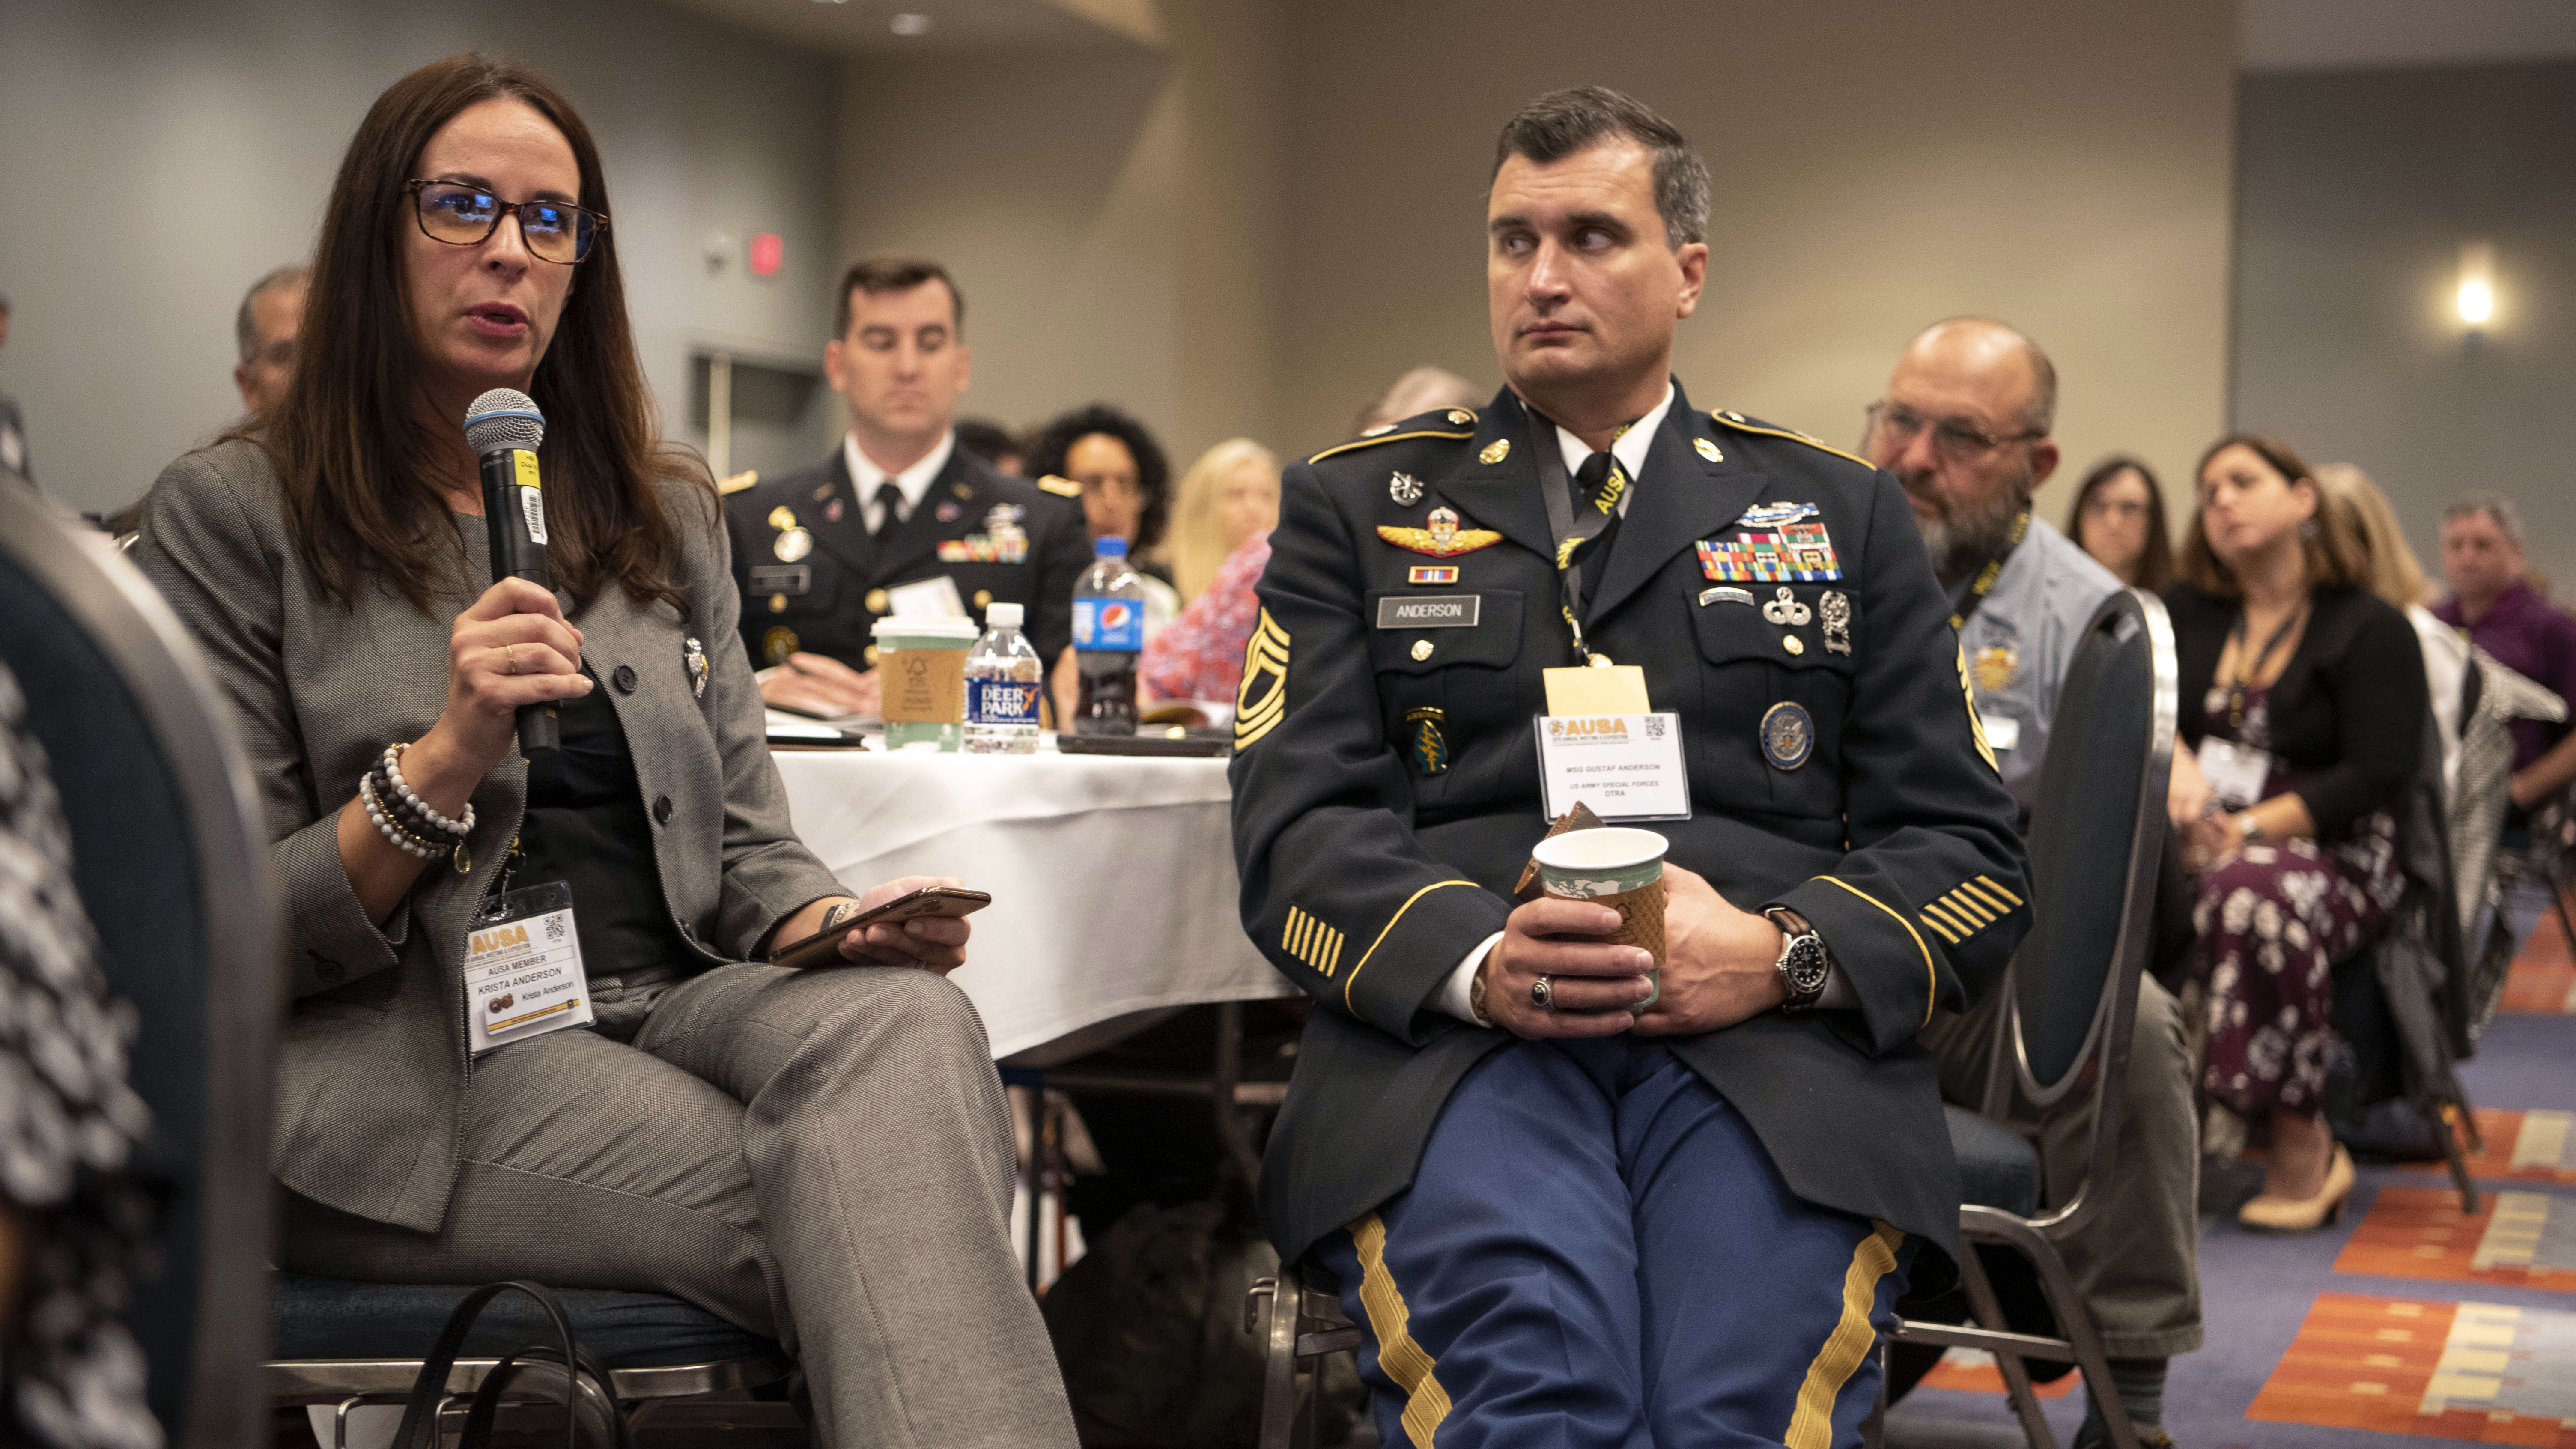 With her husband, MSG Gustav Anderson by her side, Krista Anderson asks a question to the panel at the Family Forum II: Army Housing and PCS at the 2019 AUSA Annual Meeting and Exposition at the Washington Convention Center on Oct. 15, 2019.